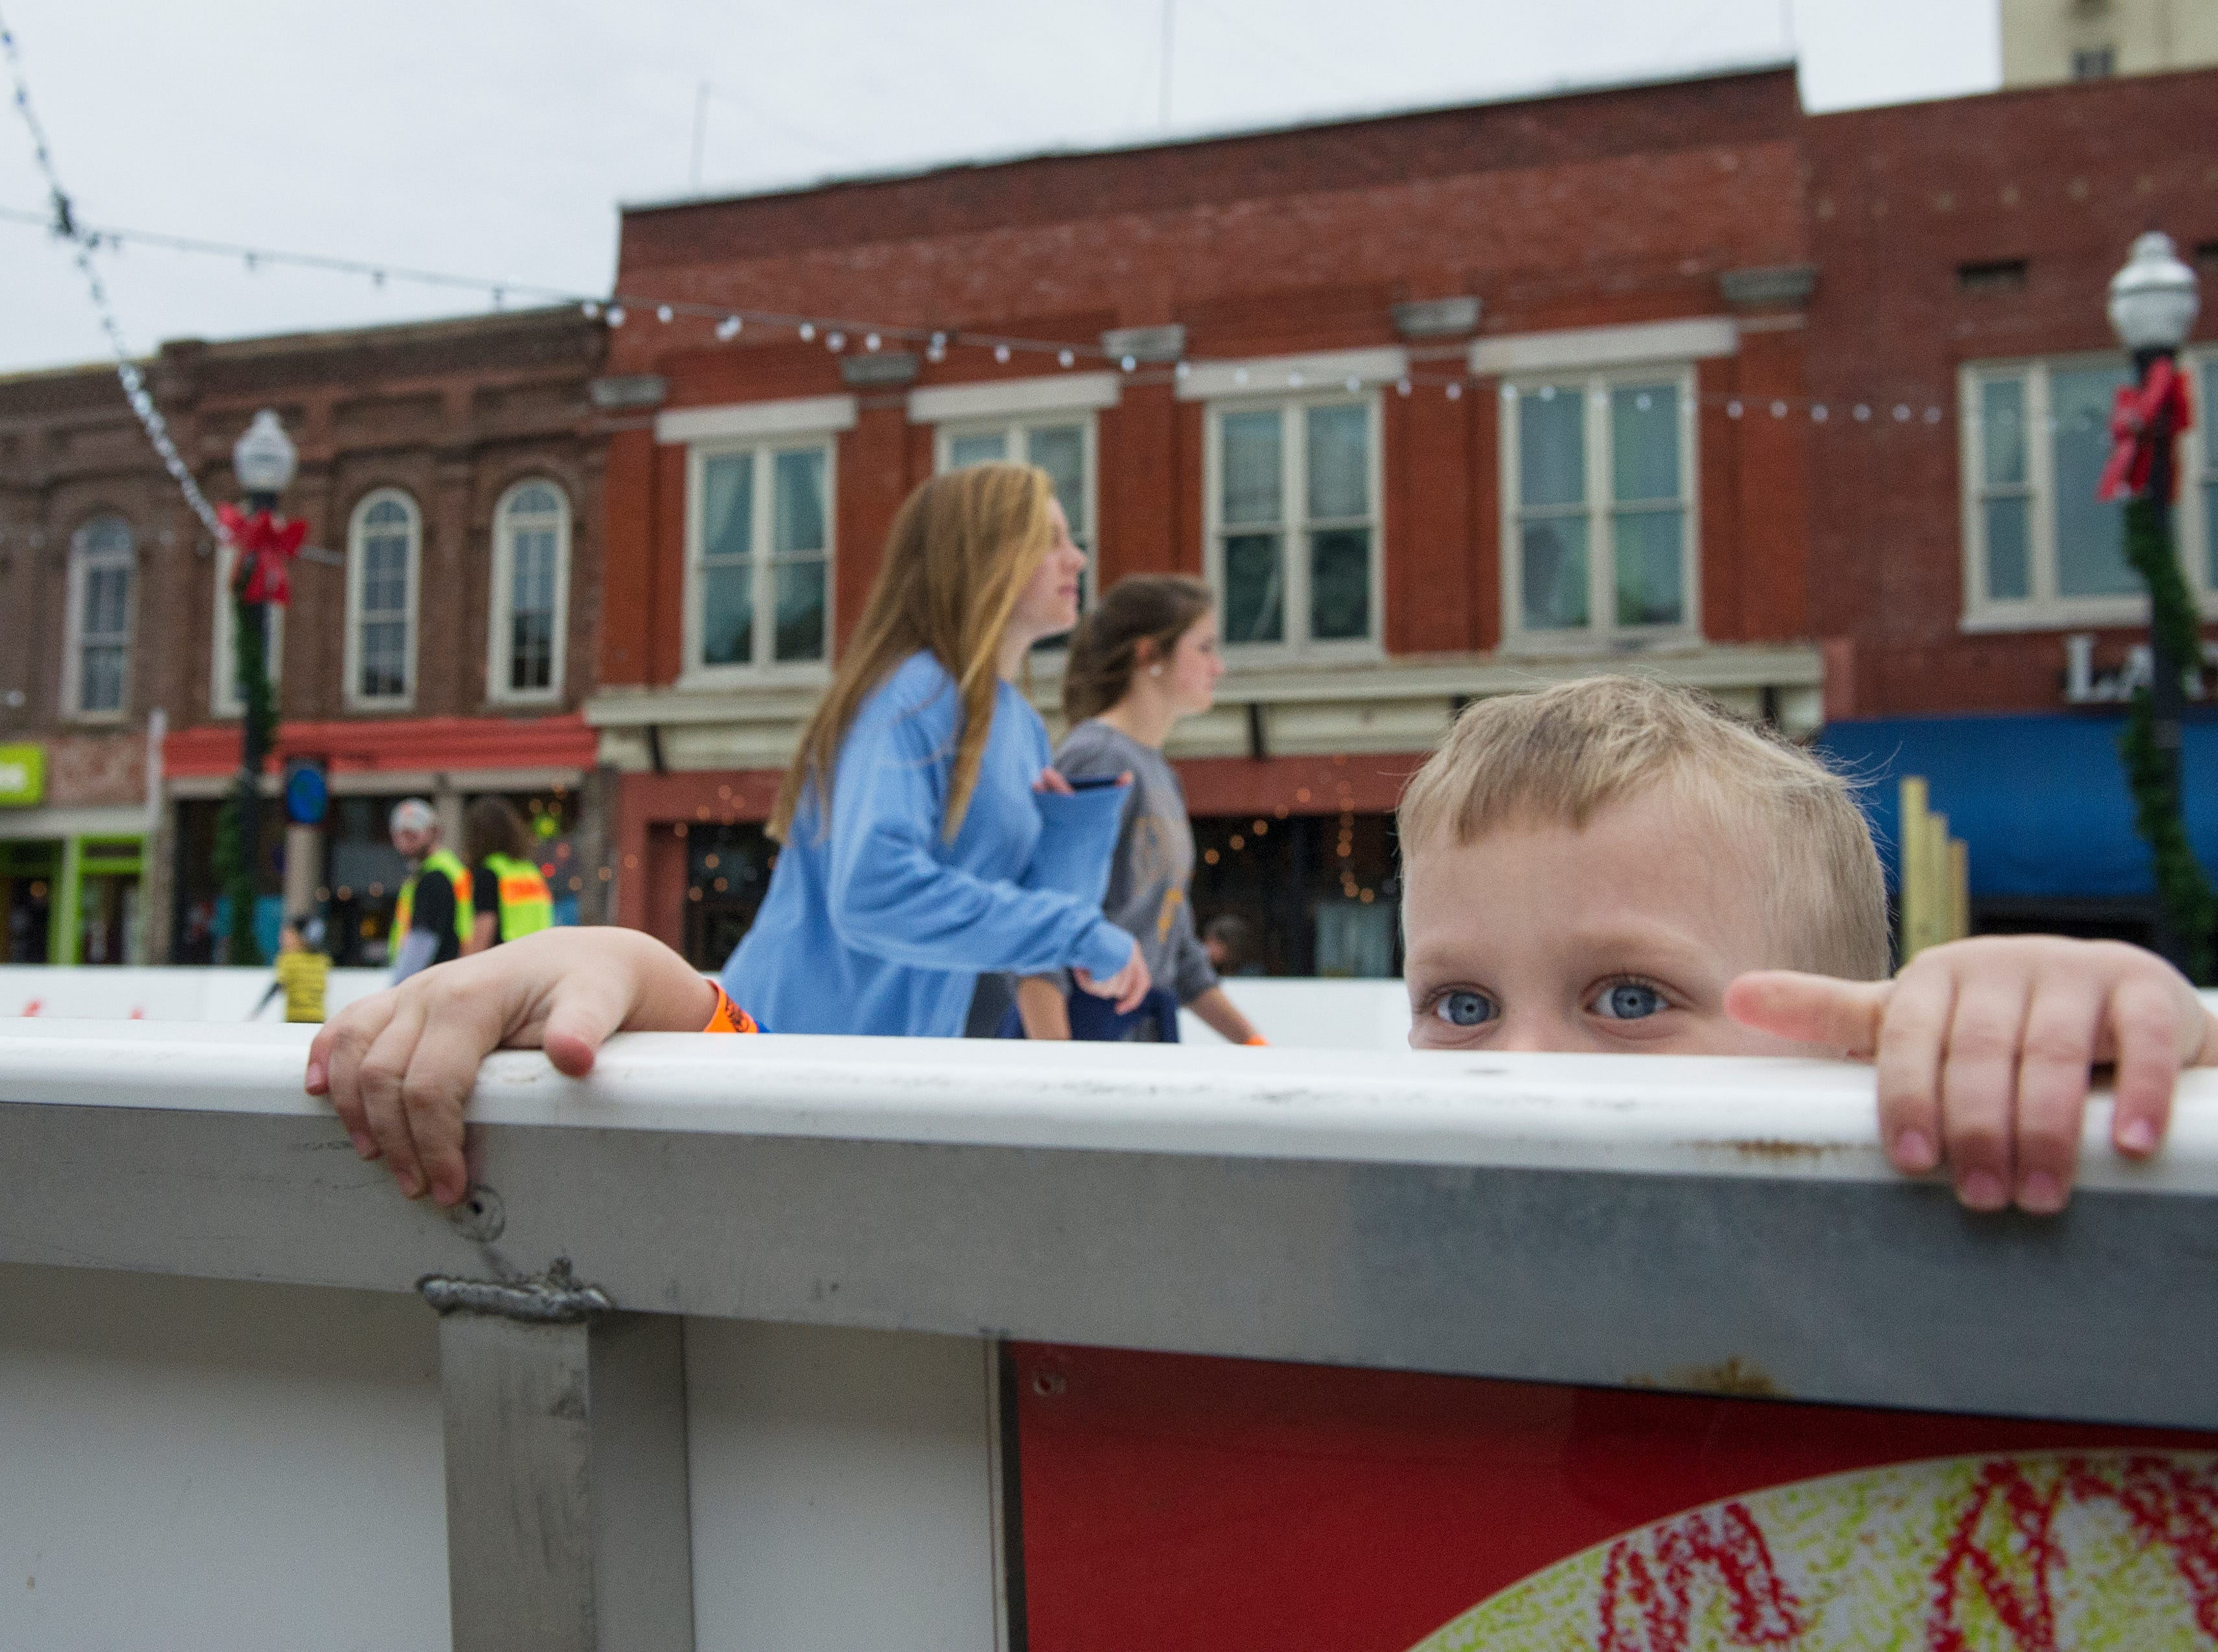 Keaton Smith, 5, of Florida holds onto the wall to keep his balance during the opening weekend for the Market Square ice skating rink Saturday, Nov. 28, 2015.